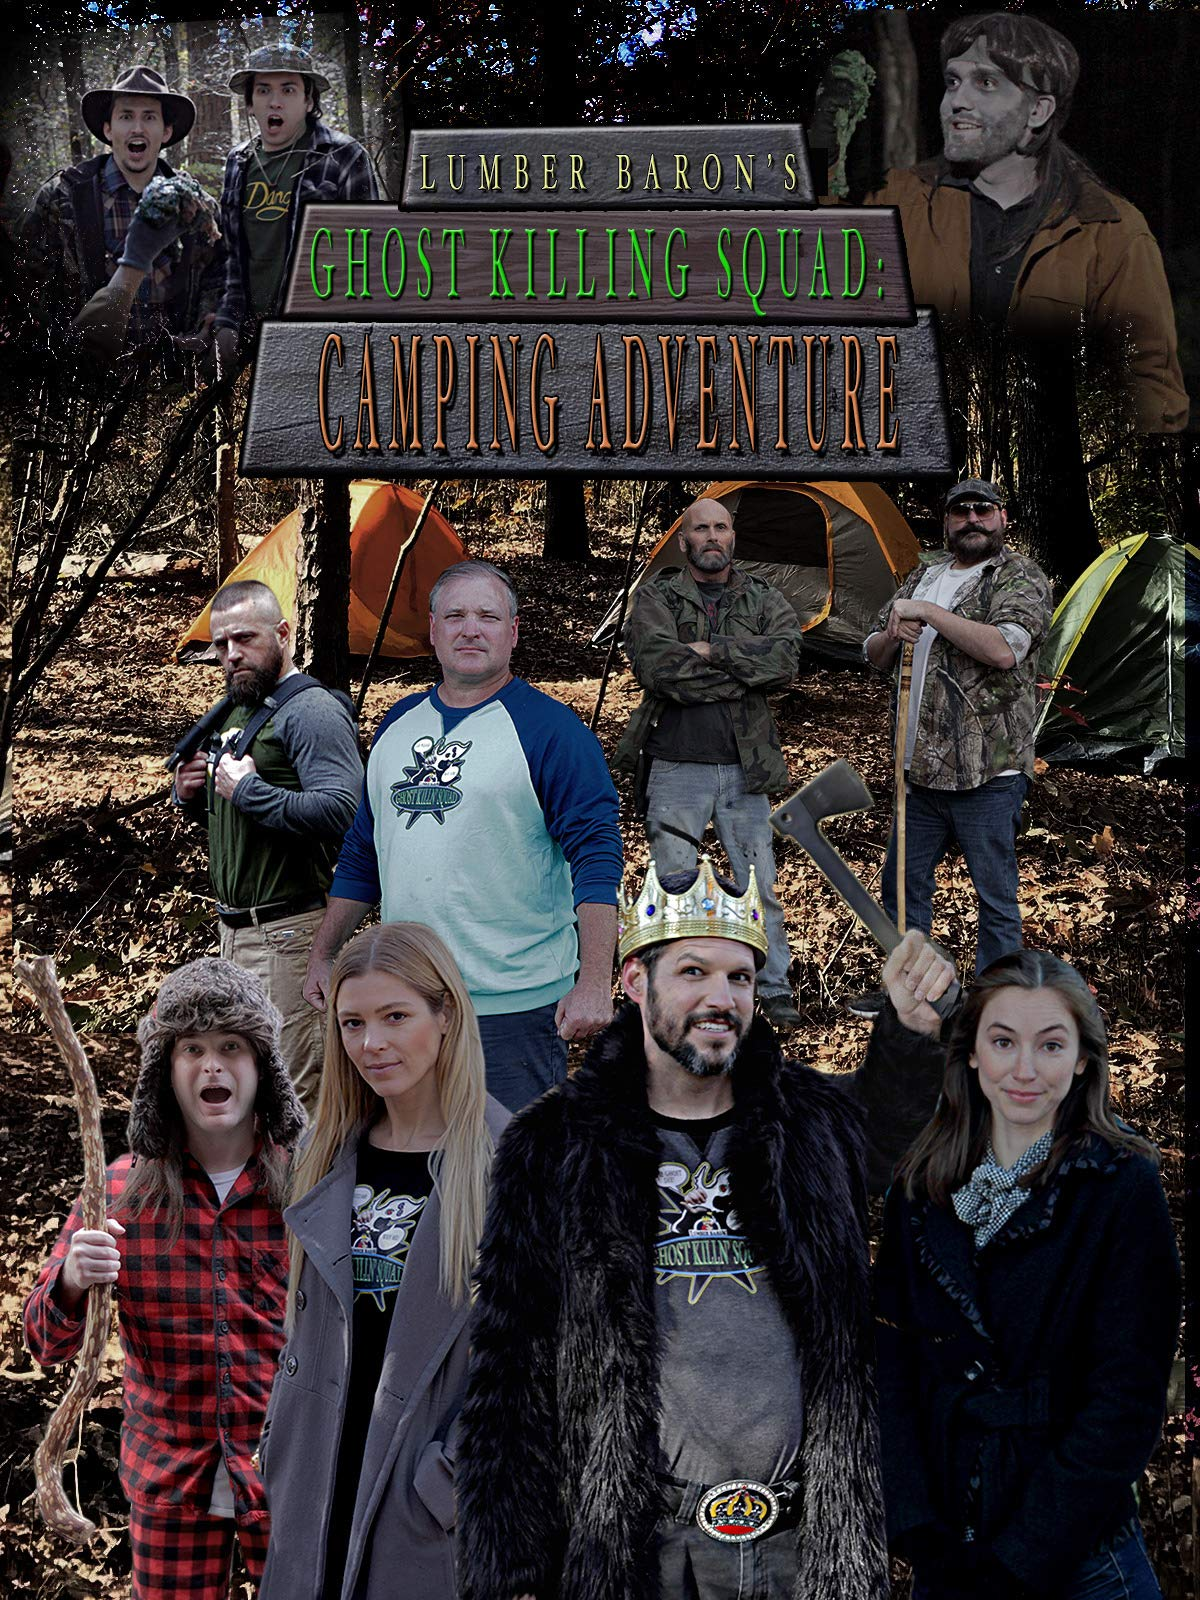 Ghost Killing Squad: Camping Adventure